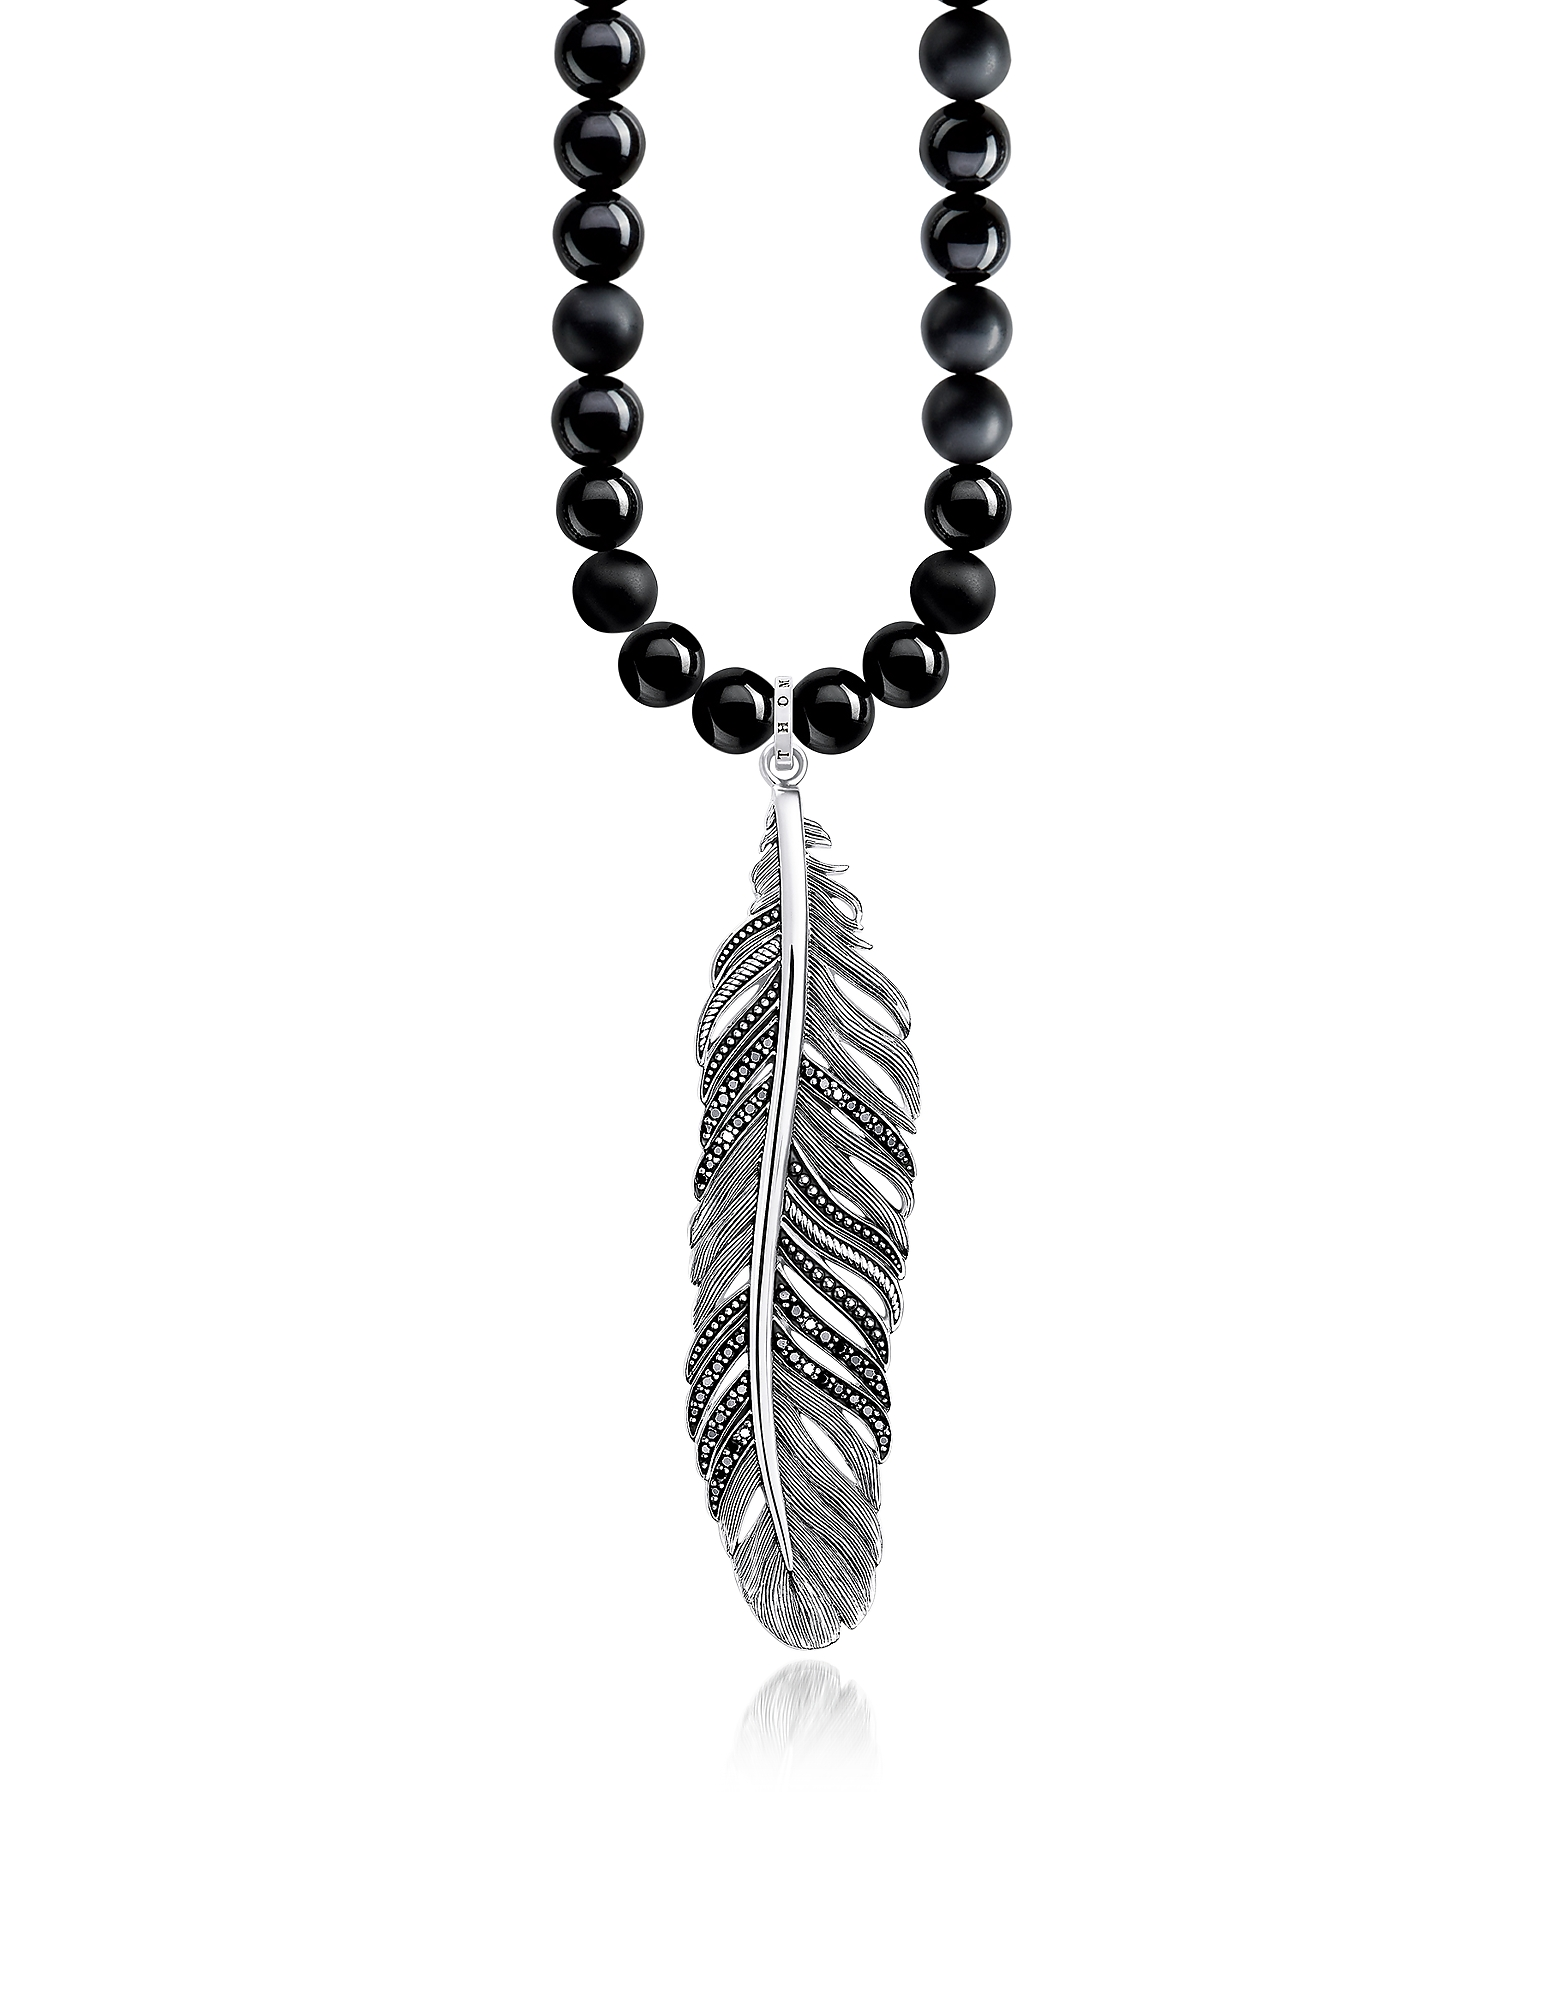 Rebel Icons Black Beads and Sterling Silver Feather Pendant Necklace